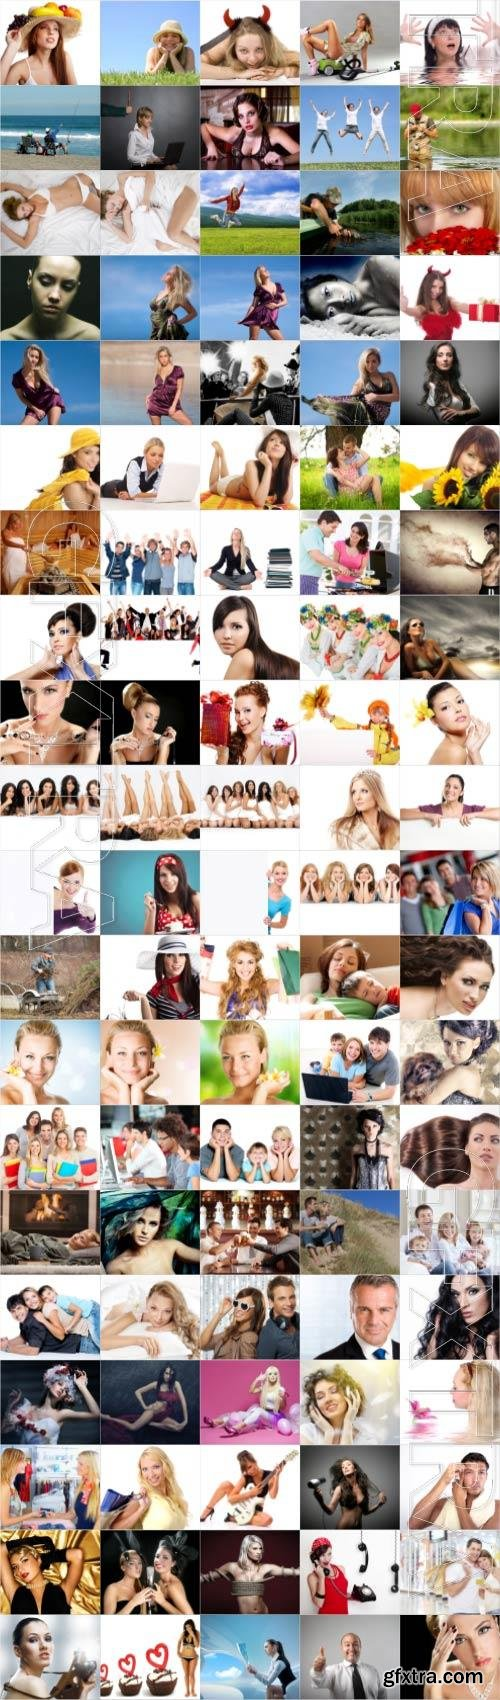 People large selection stock photos